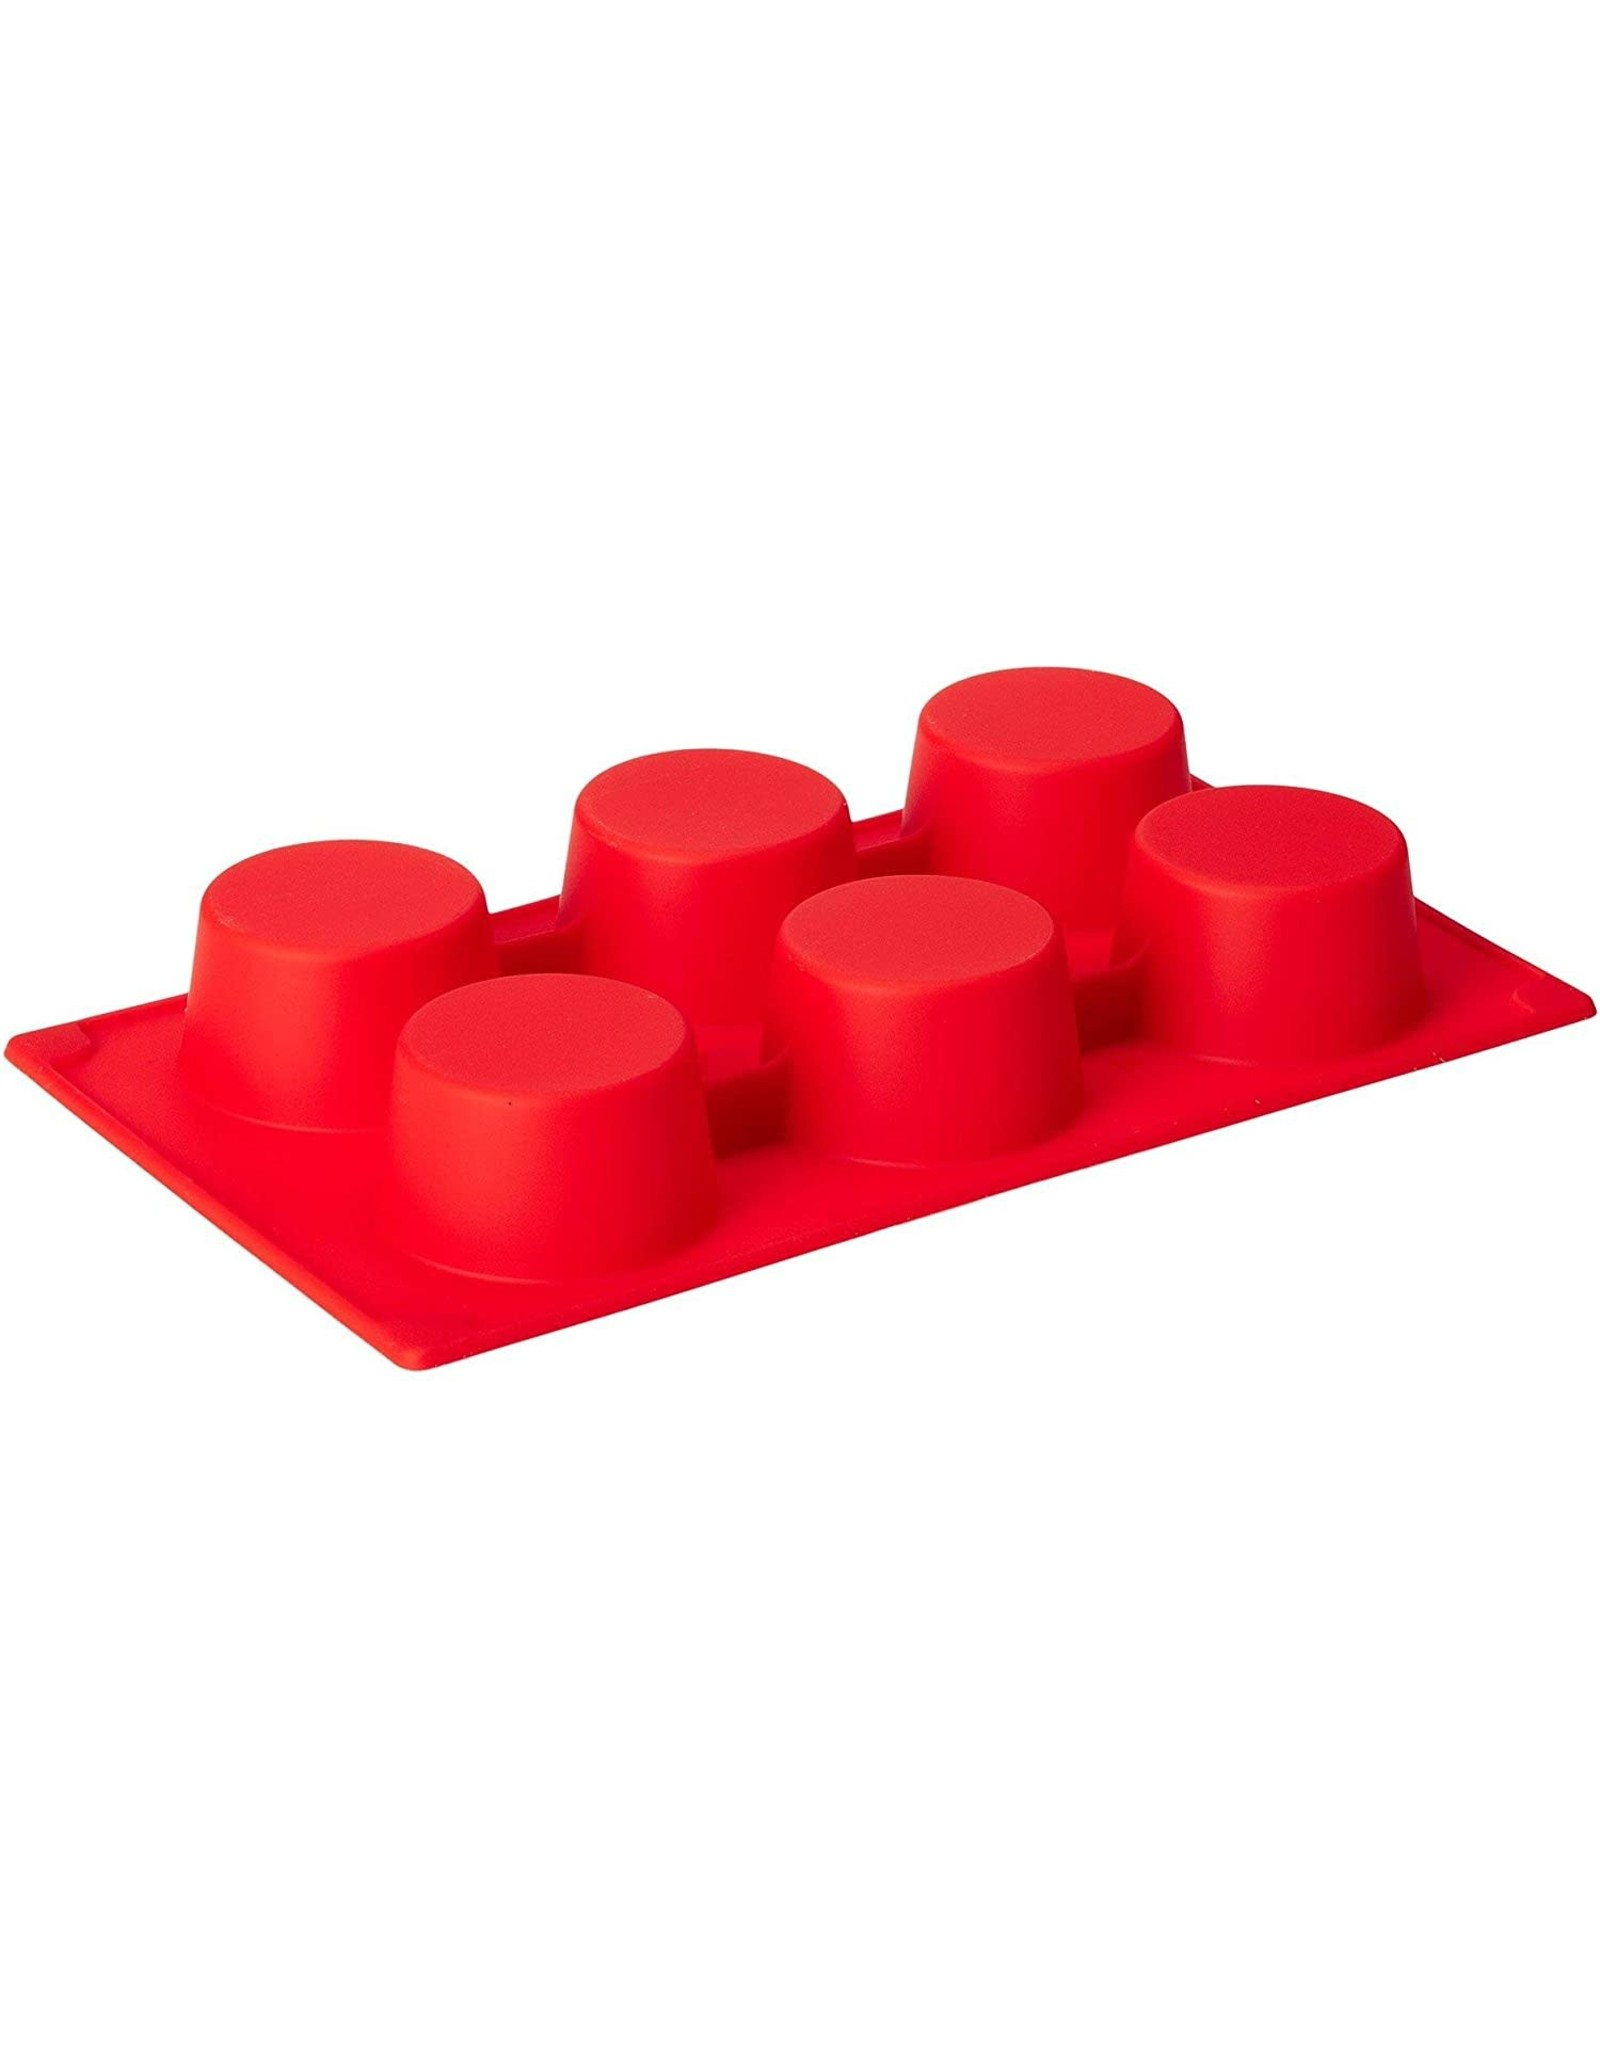 ICM LEKUE MUFFIN MOLD -6 - RED